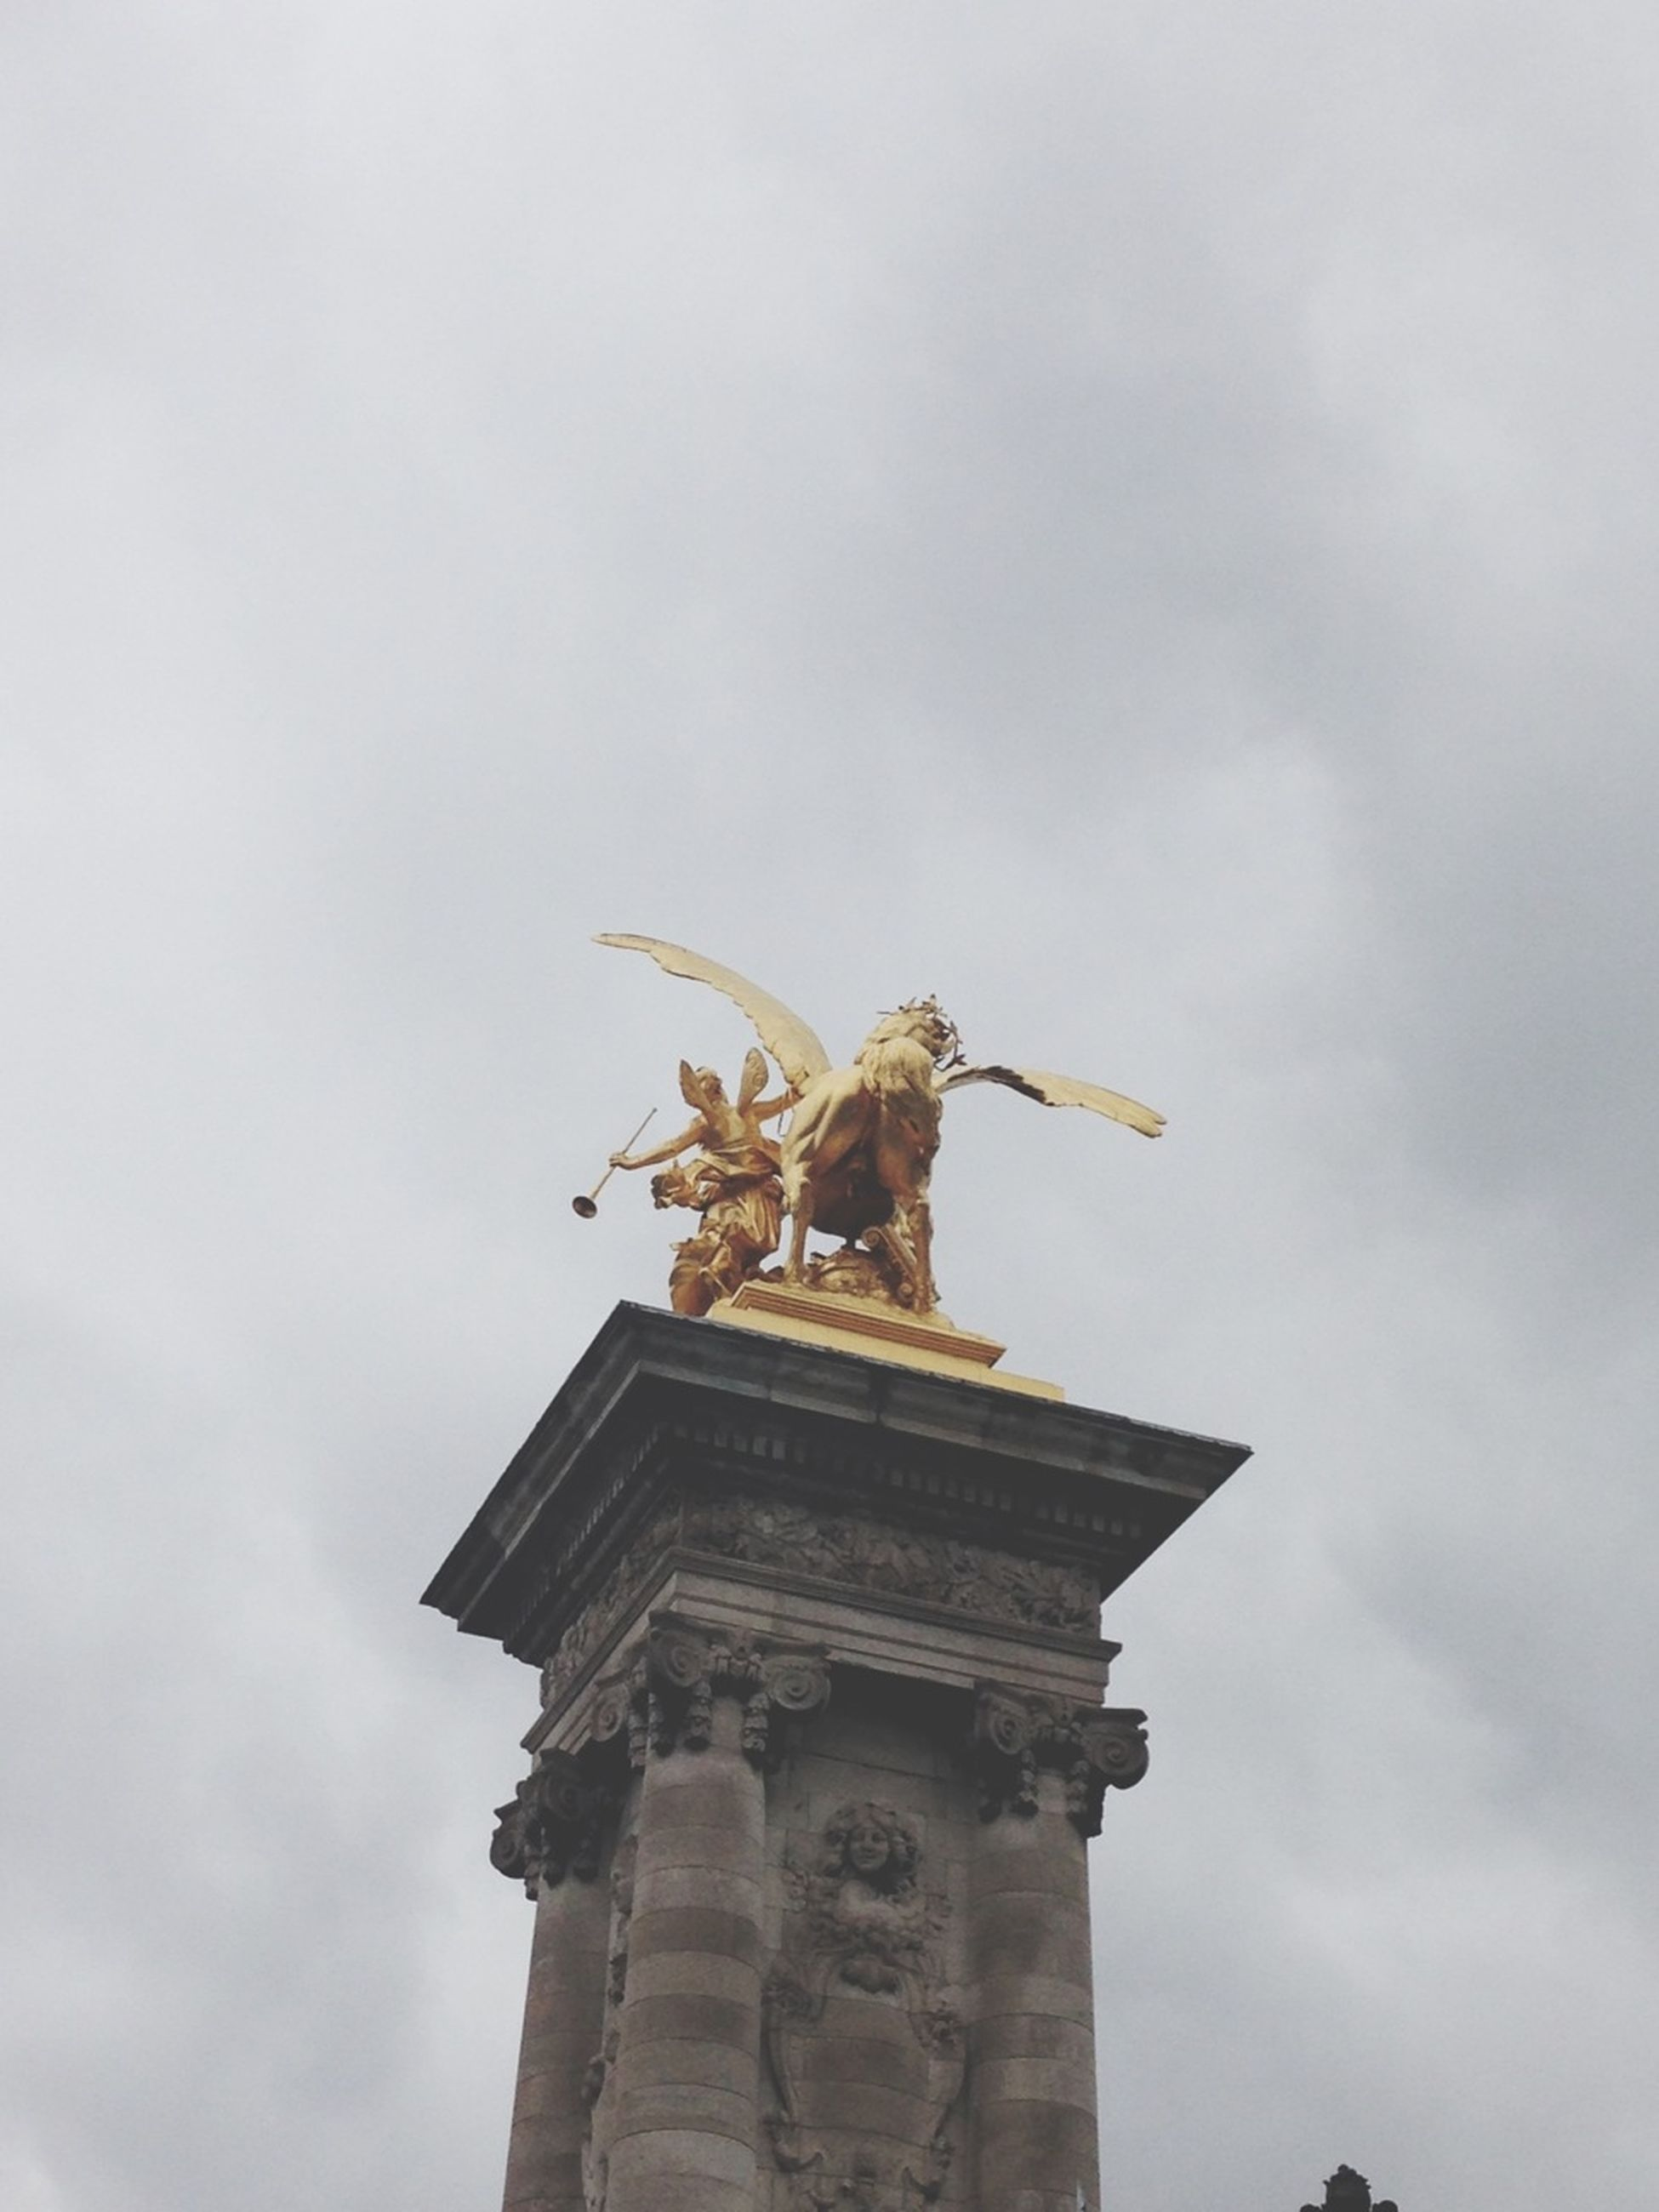 low angle view, sky, statue, sculpture, architecture, built structure, human representation, art and craft, art, animal themes, cloud - sky, animals in the wild, history, one animal, animal representation, building exterior, outdoors, creativity, day, no people